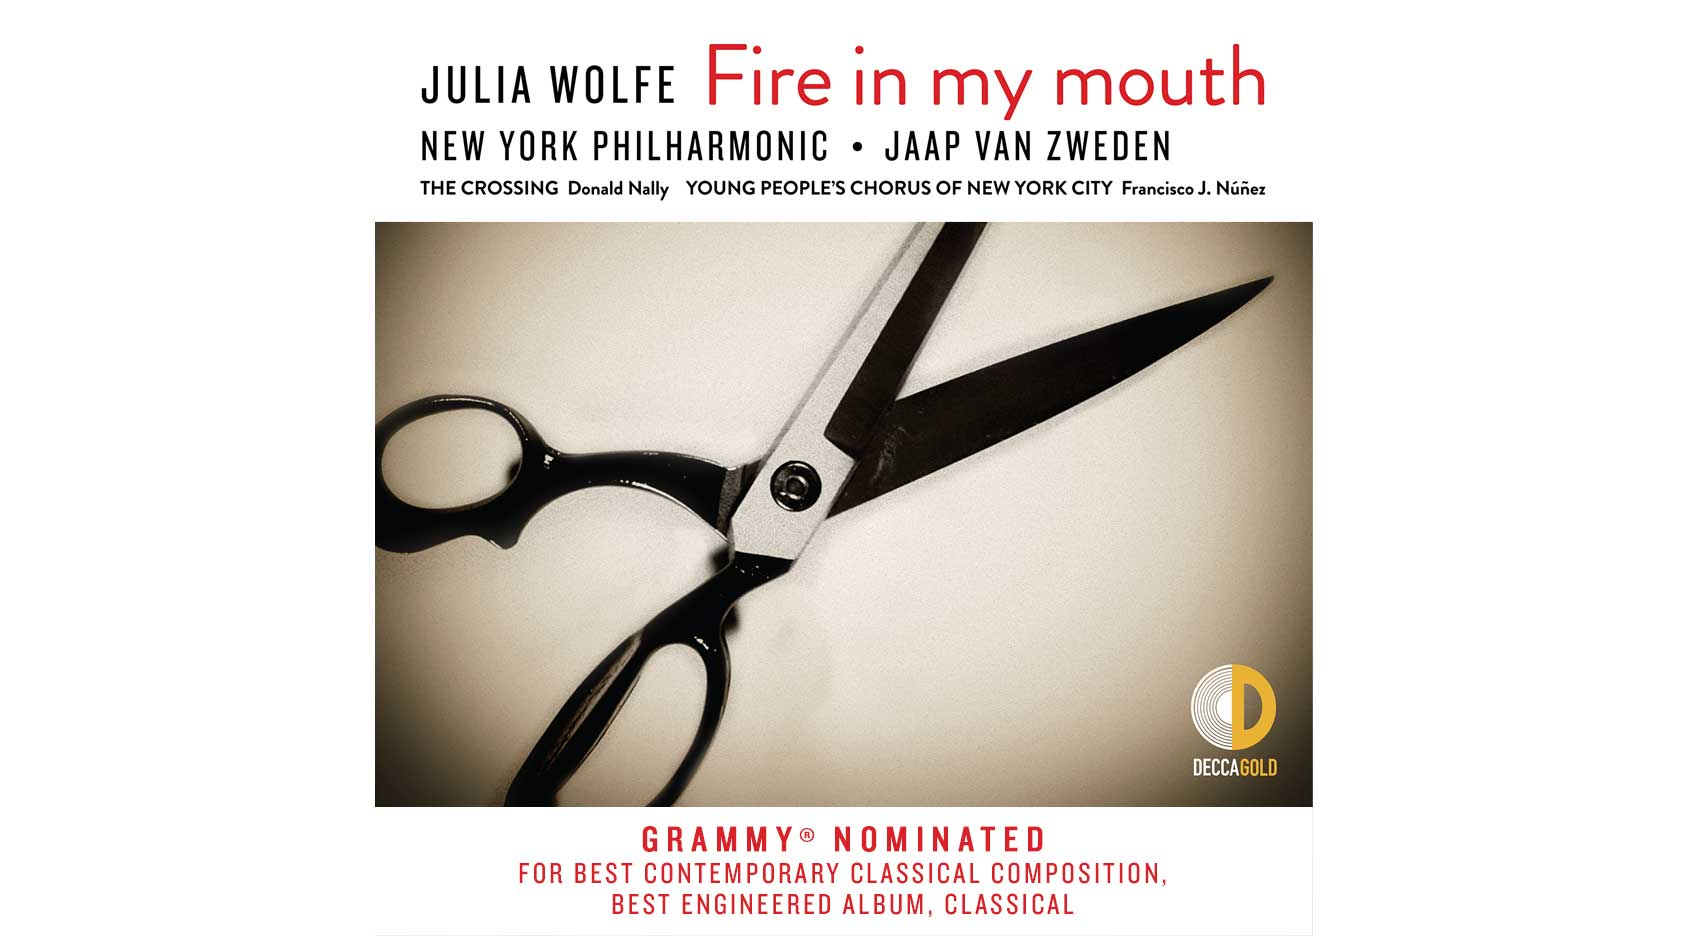 Graphic of the cover of the New York Philharmonic's recording of Julia Wolfe's 'Fire in my mouth'